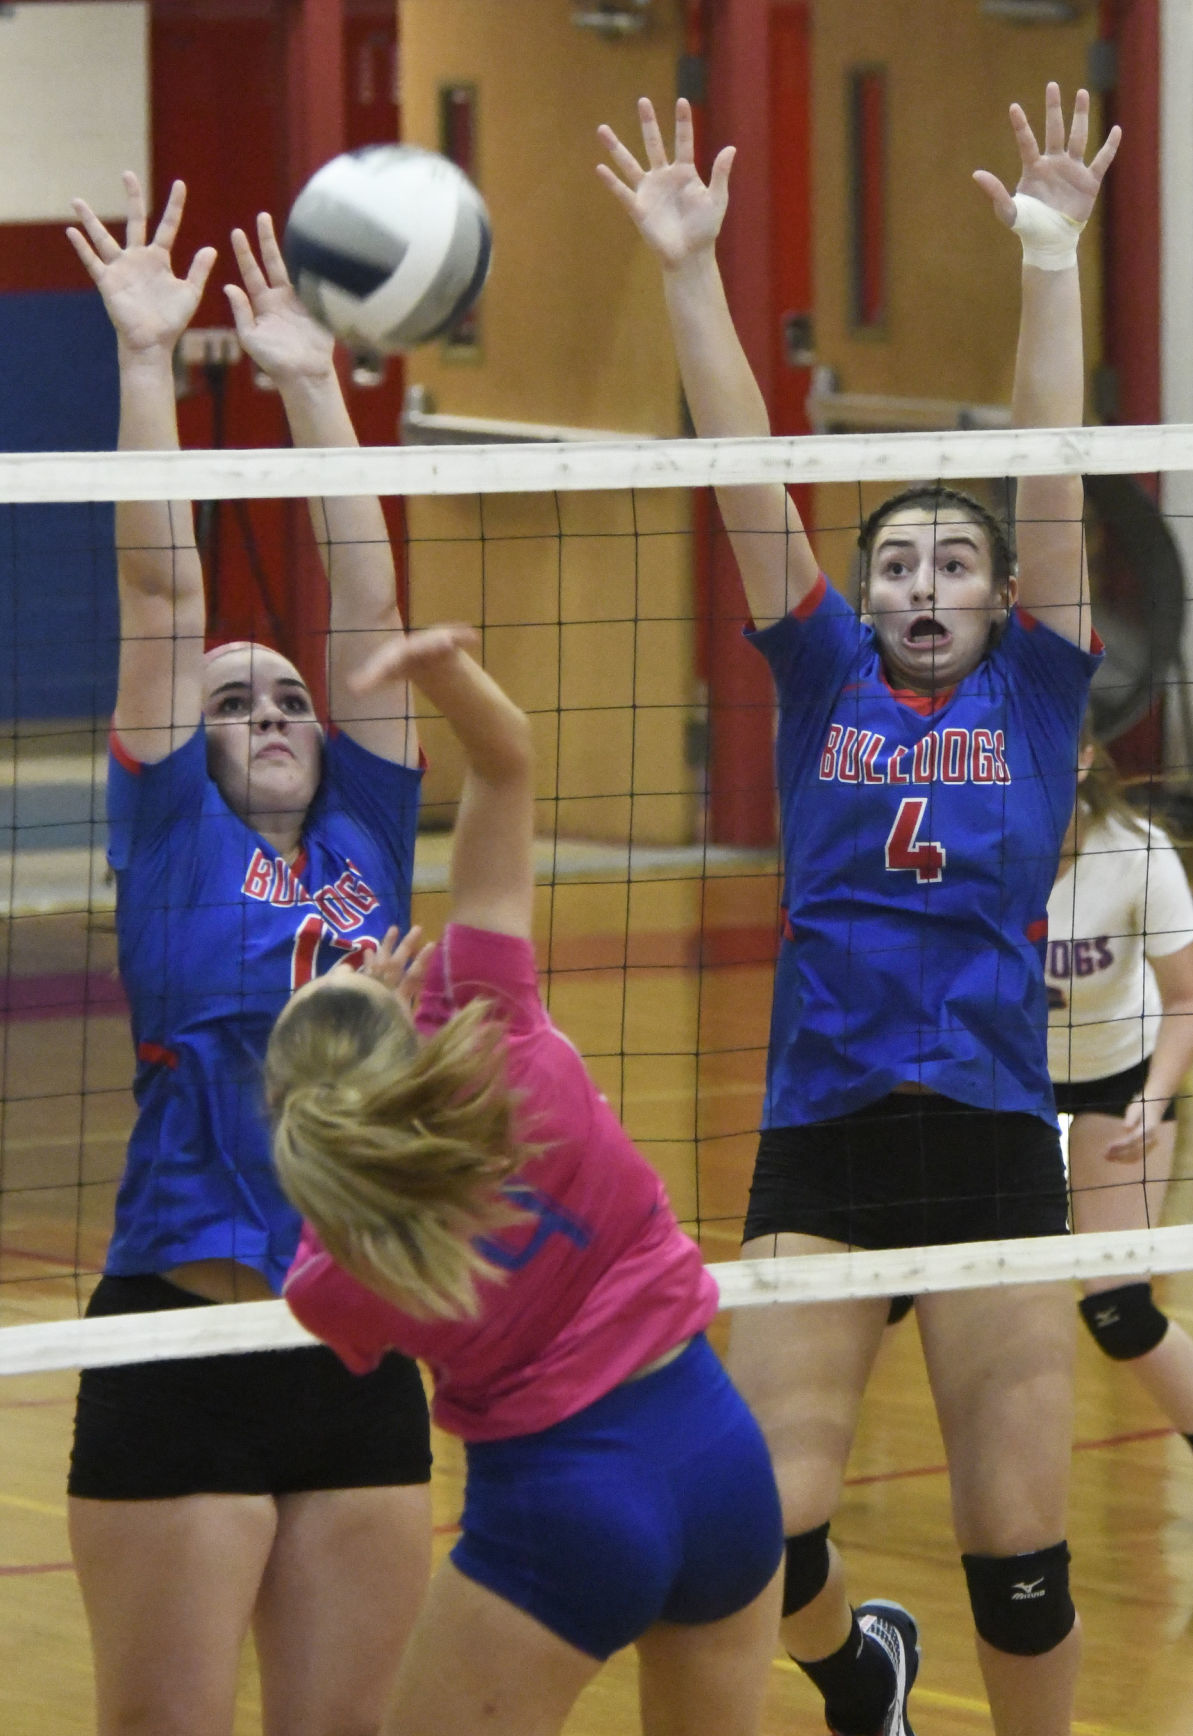 Volleyball: South High vs. Queensbury